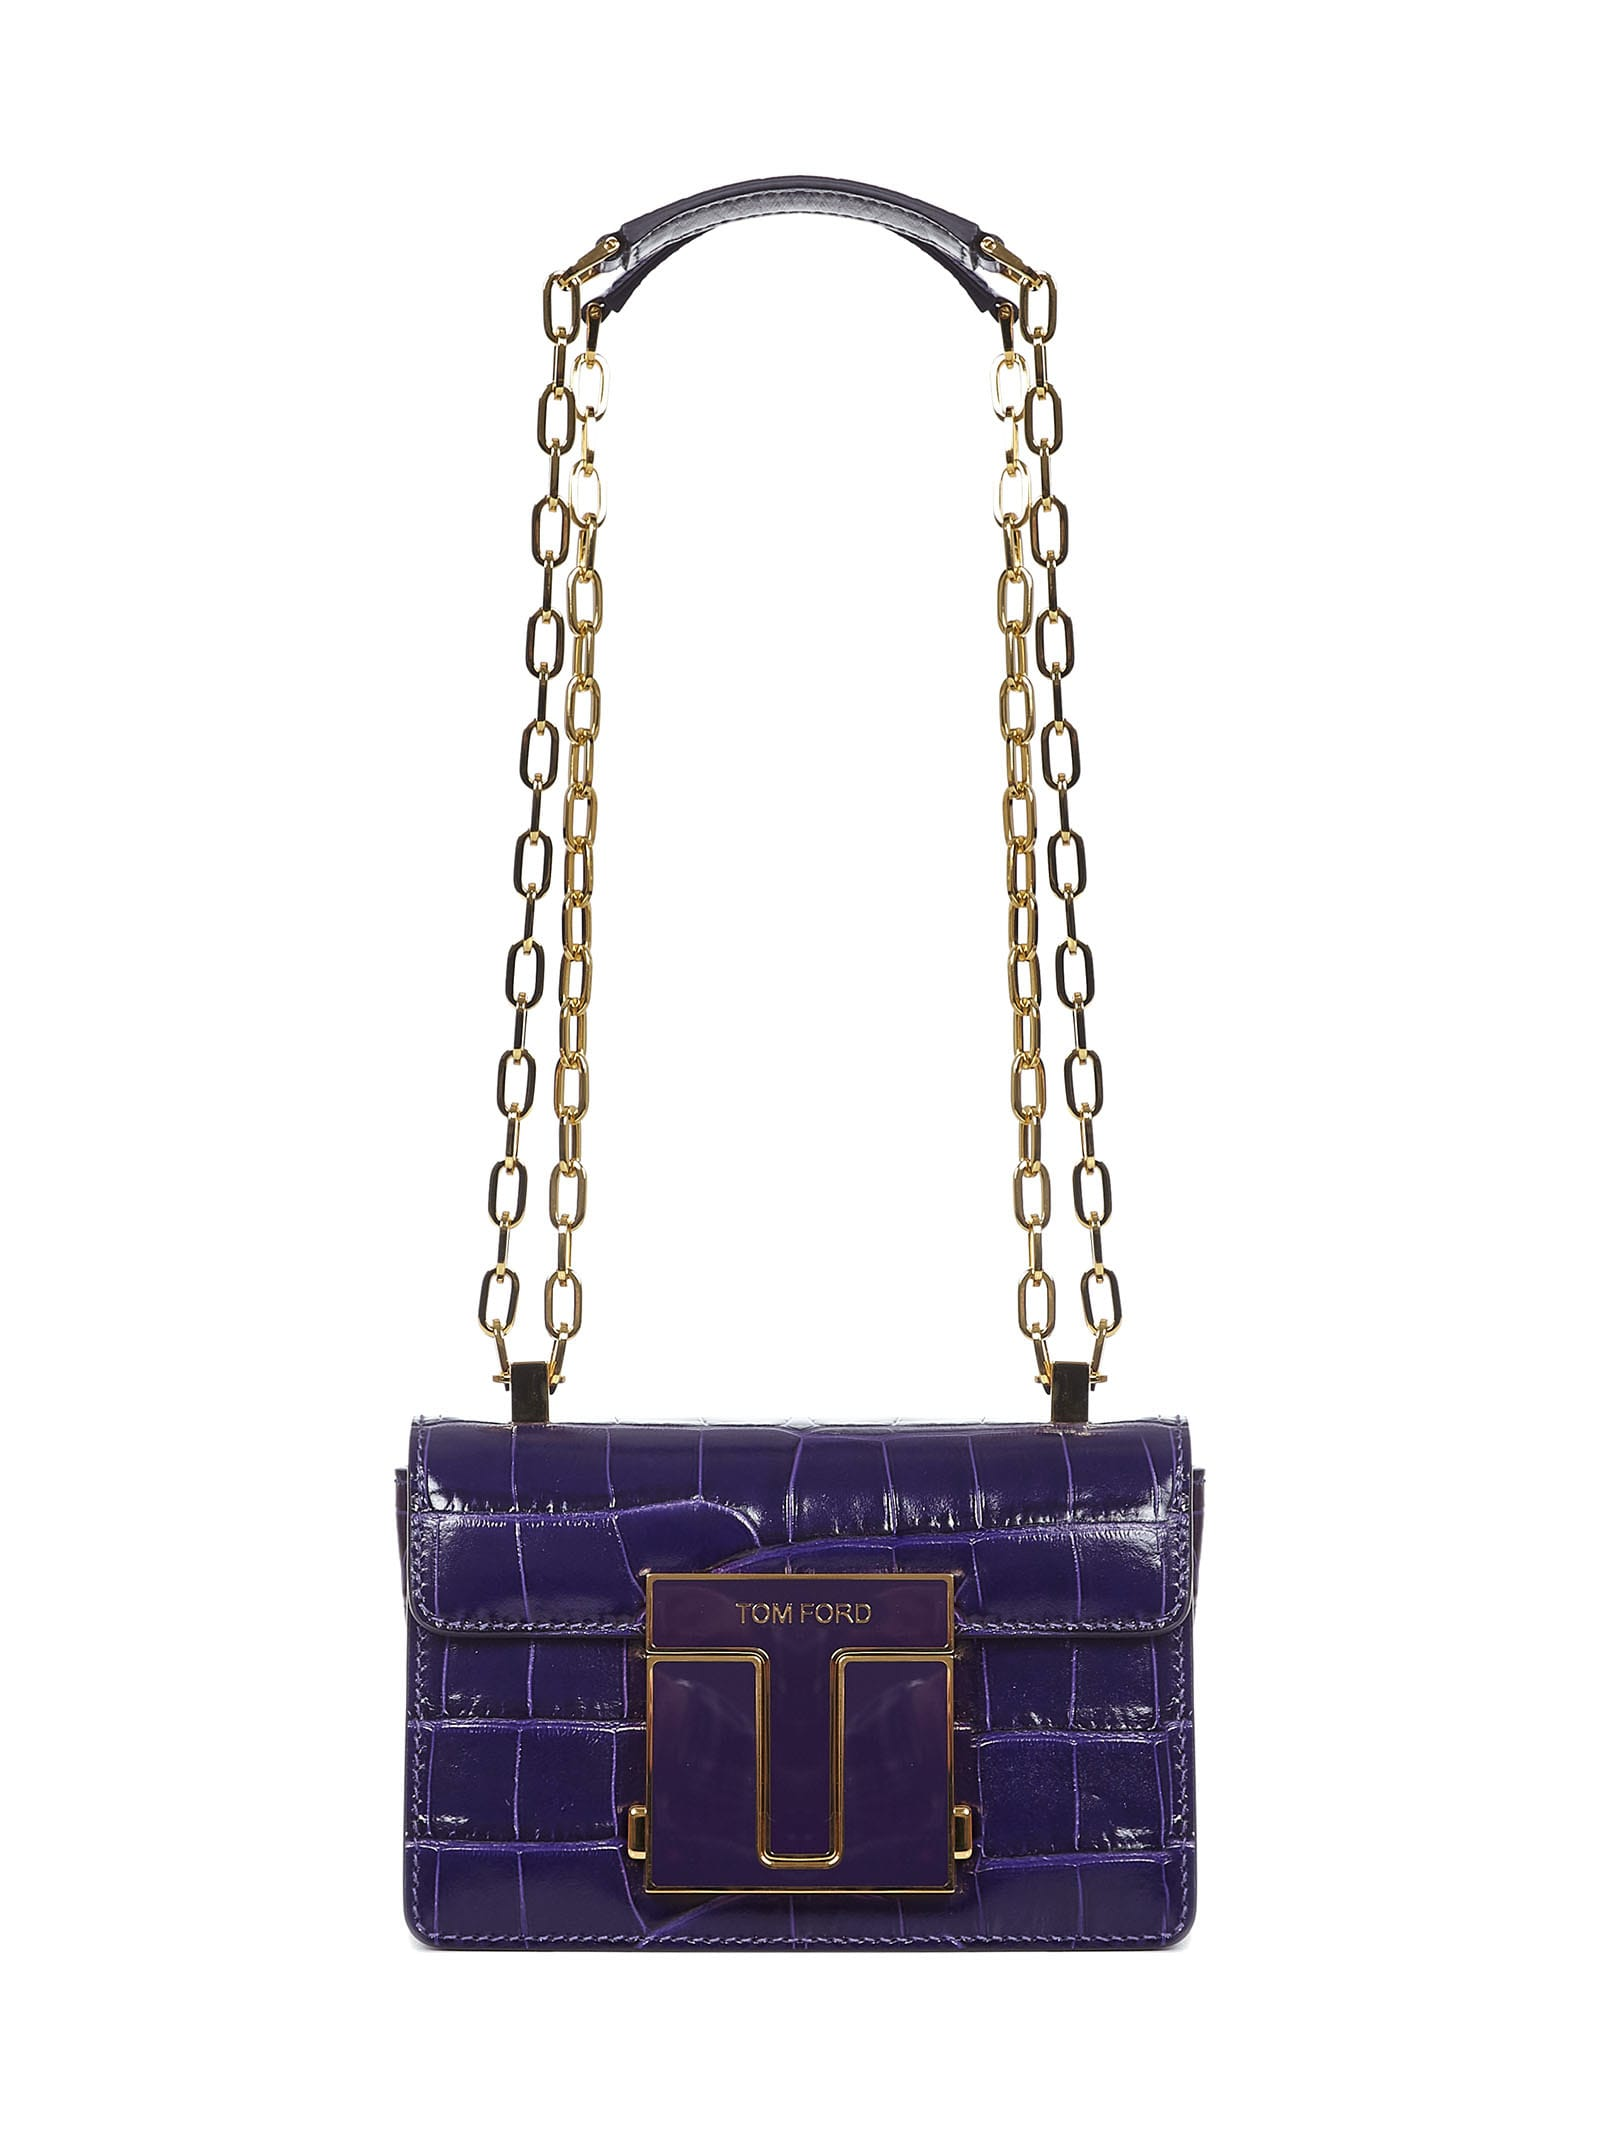 Tom Ford Leathers 001 SMALL SHOULDER BAG